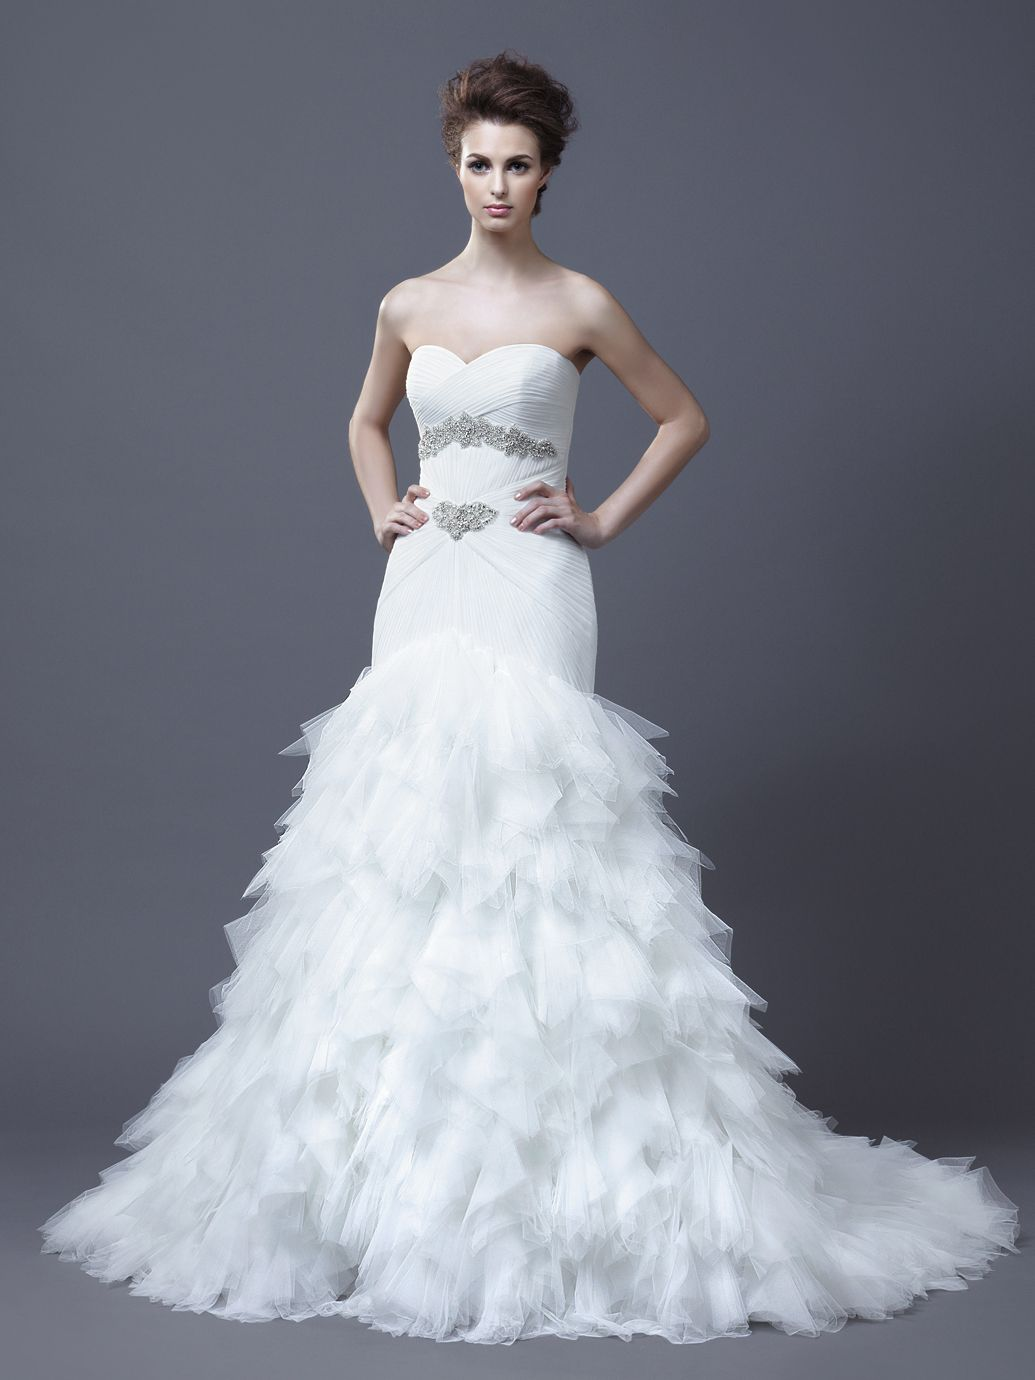 White and silver wedding dresses  HADIYA  Enzoani Collection  Enzoani  Available Colours  Ivory